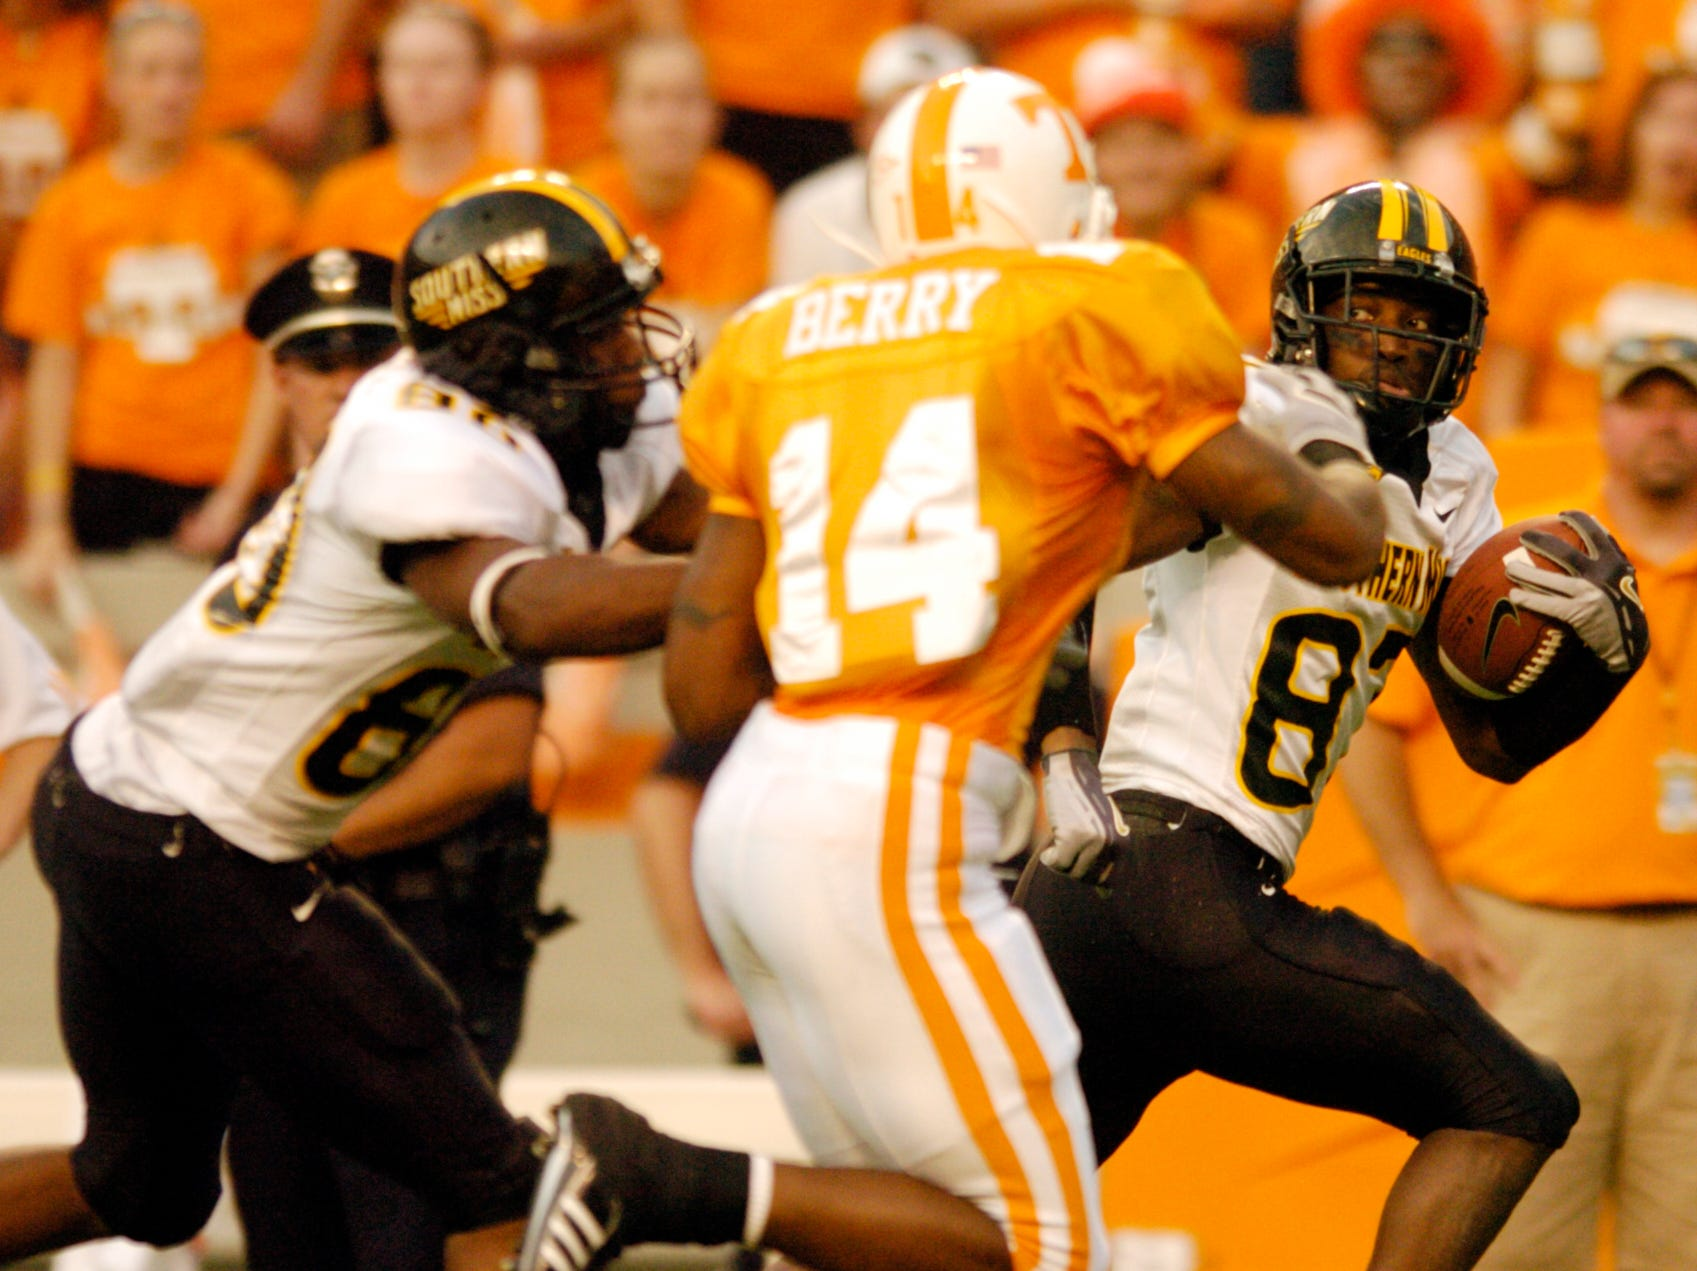 Southern Miss wide receiver Chris Johnson gets past Tennessee safety Eric Berry for a 69-yard touchdown on Saturday at Neyland Stadium. The score gave the Golden Eagles a 10-7 first quarter lead en route to a 39-19 victory, improving their season record to 1-1.